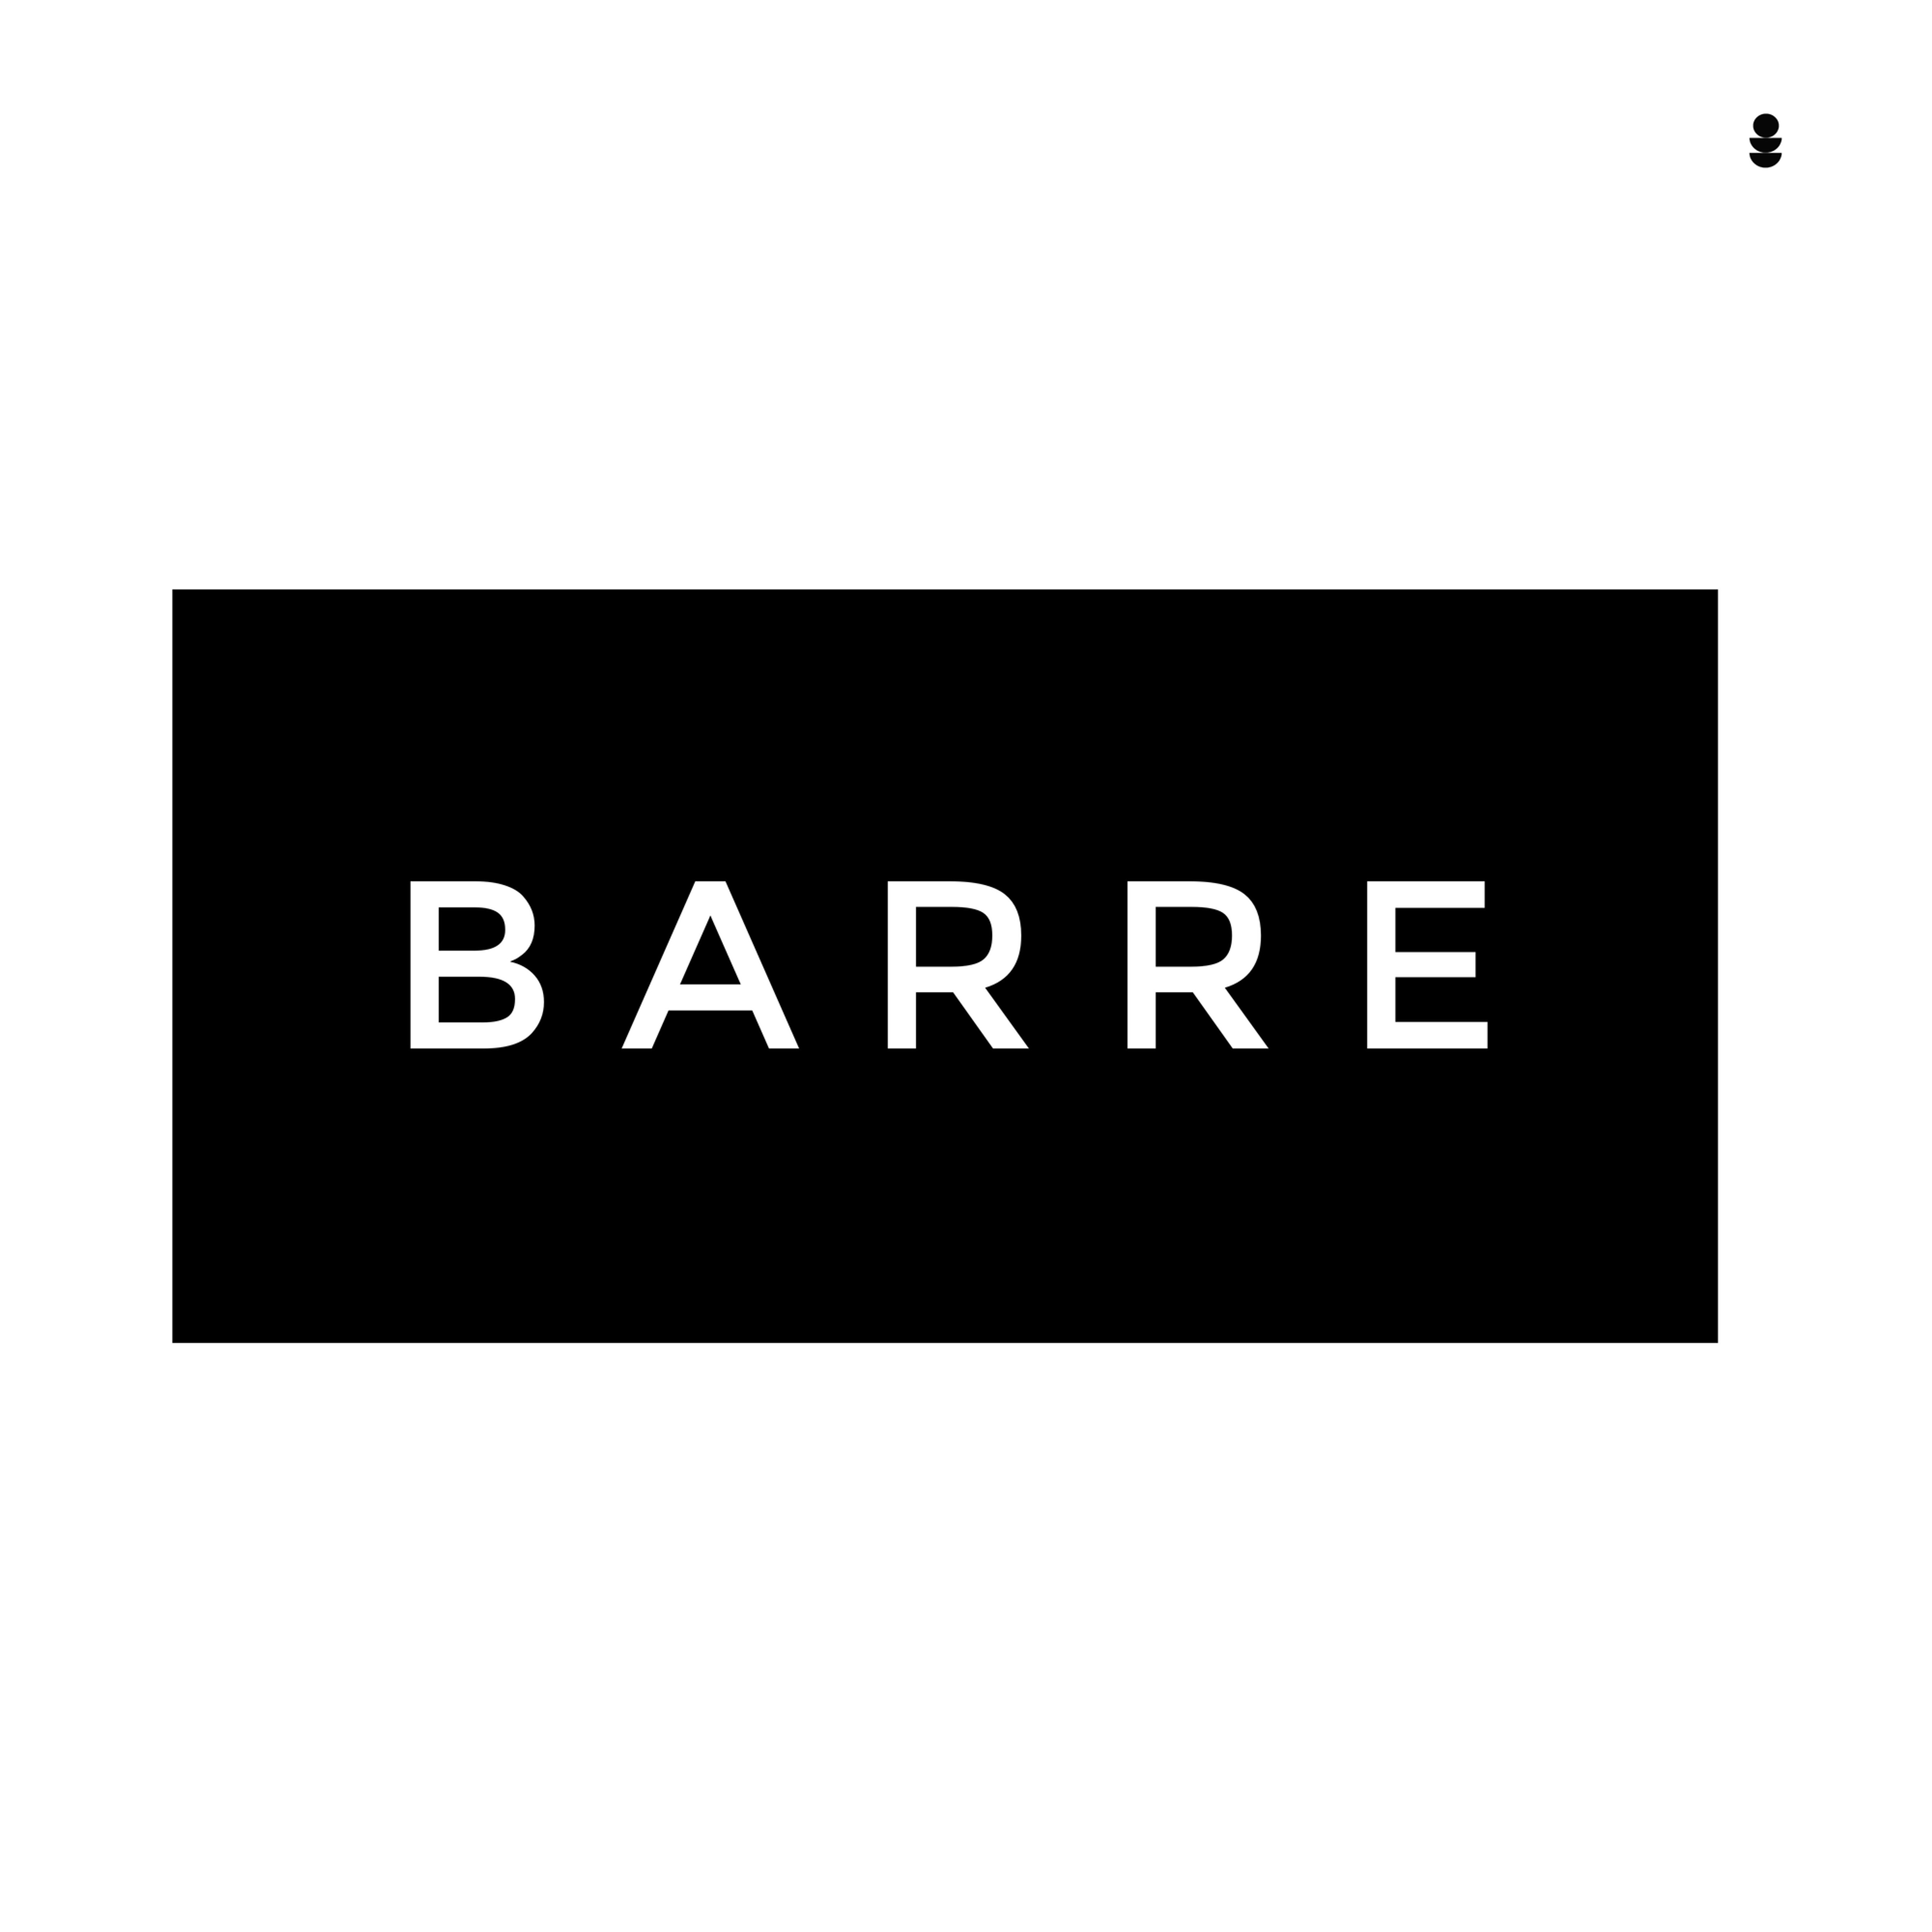 Barre by Anna C